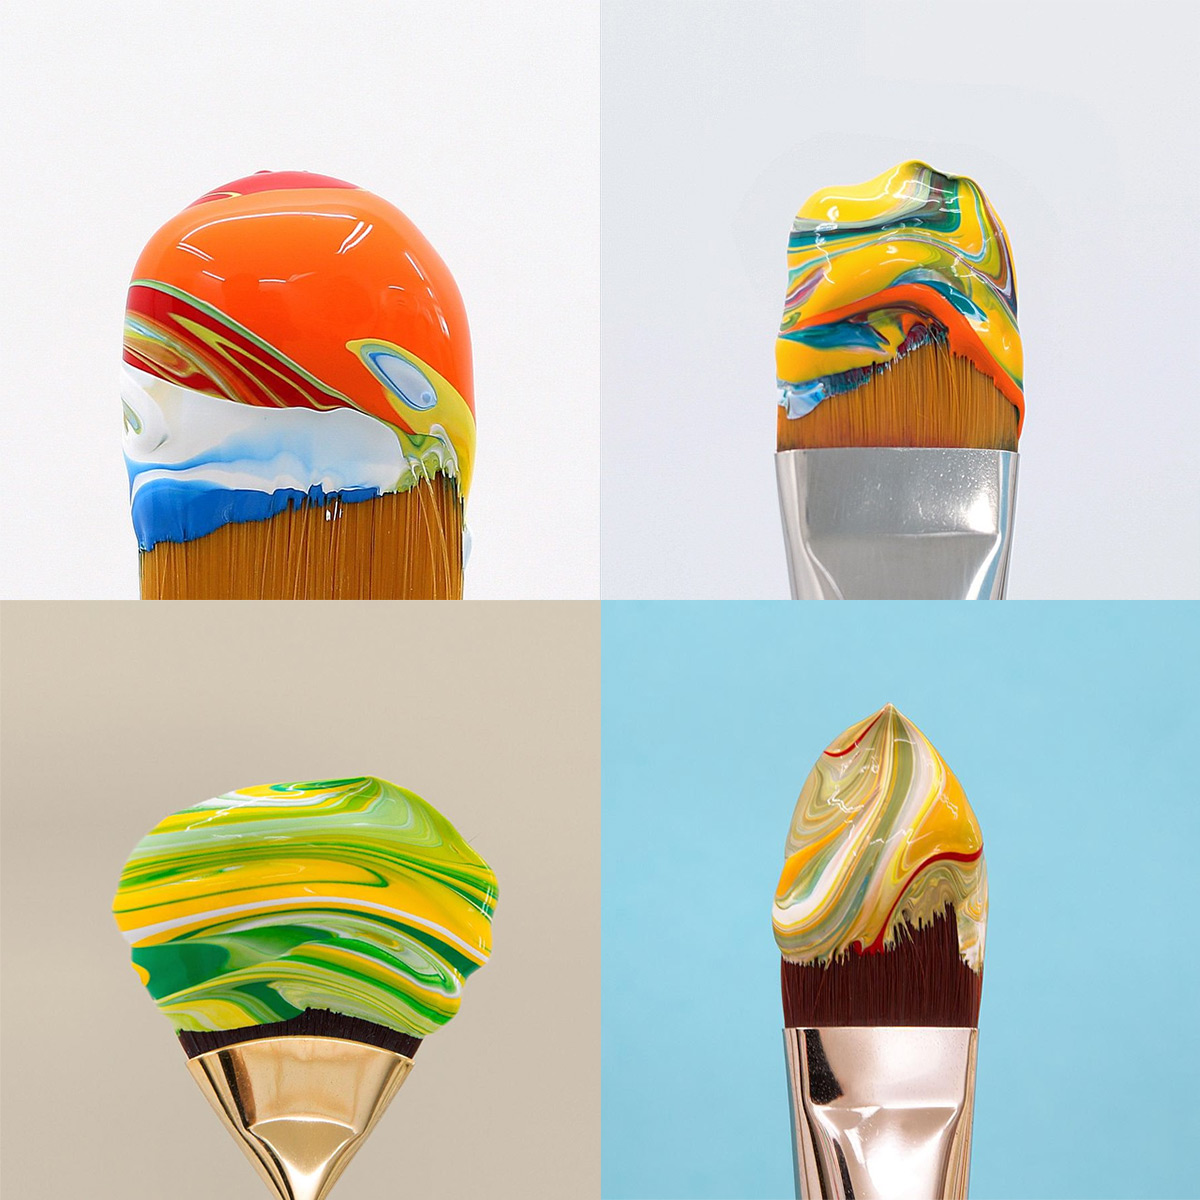 Gloopy Ice Cream Paint Brushes Photographed by Jose Lourenco